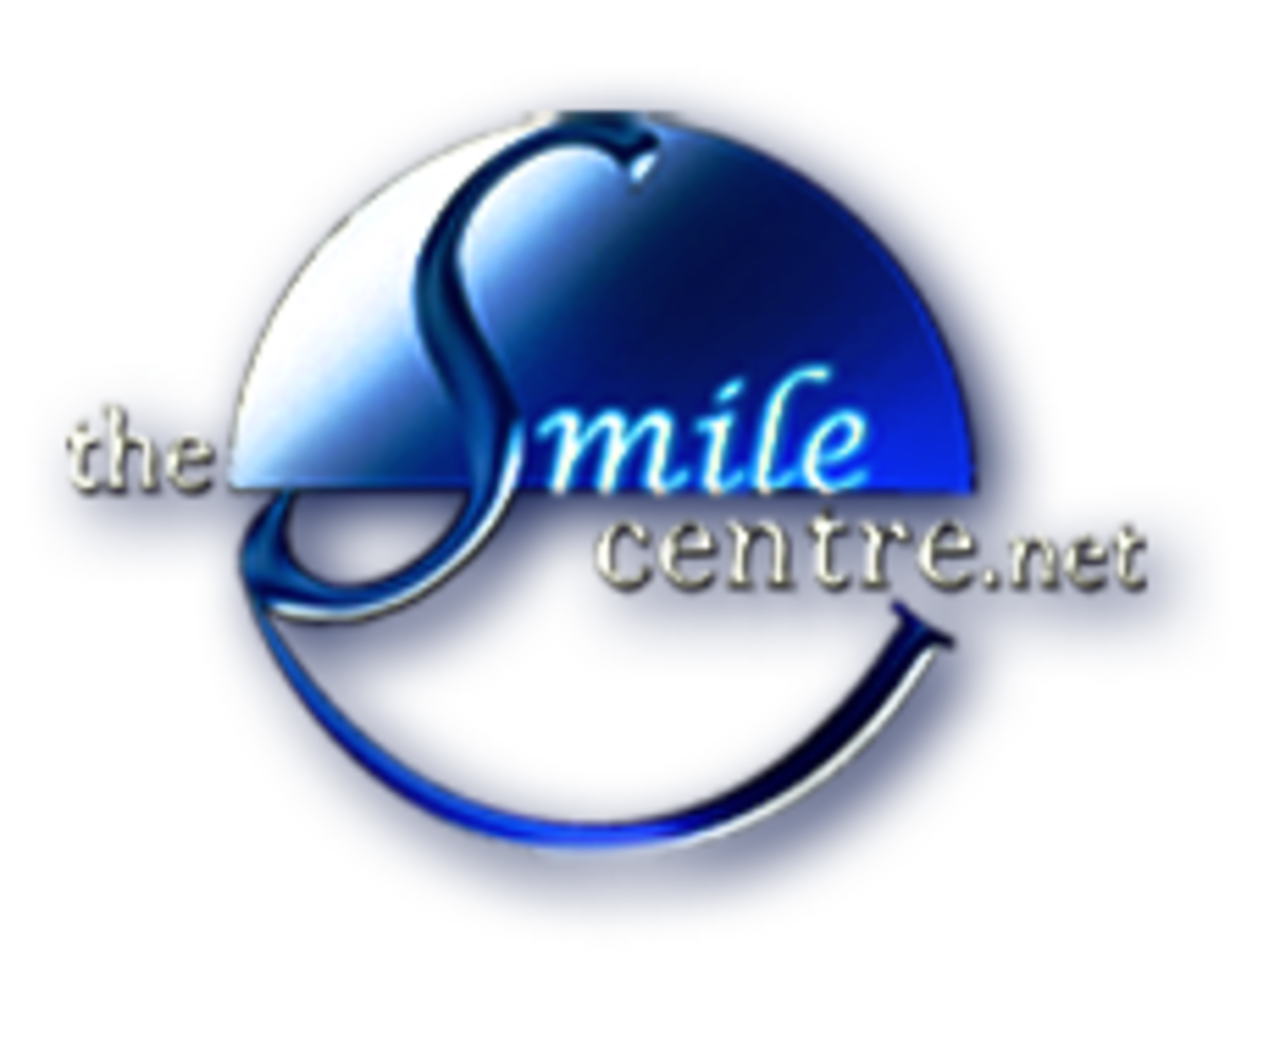 The Smile Centre - Medical - Dentists in Sarasota FL